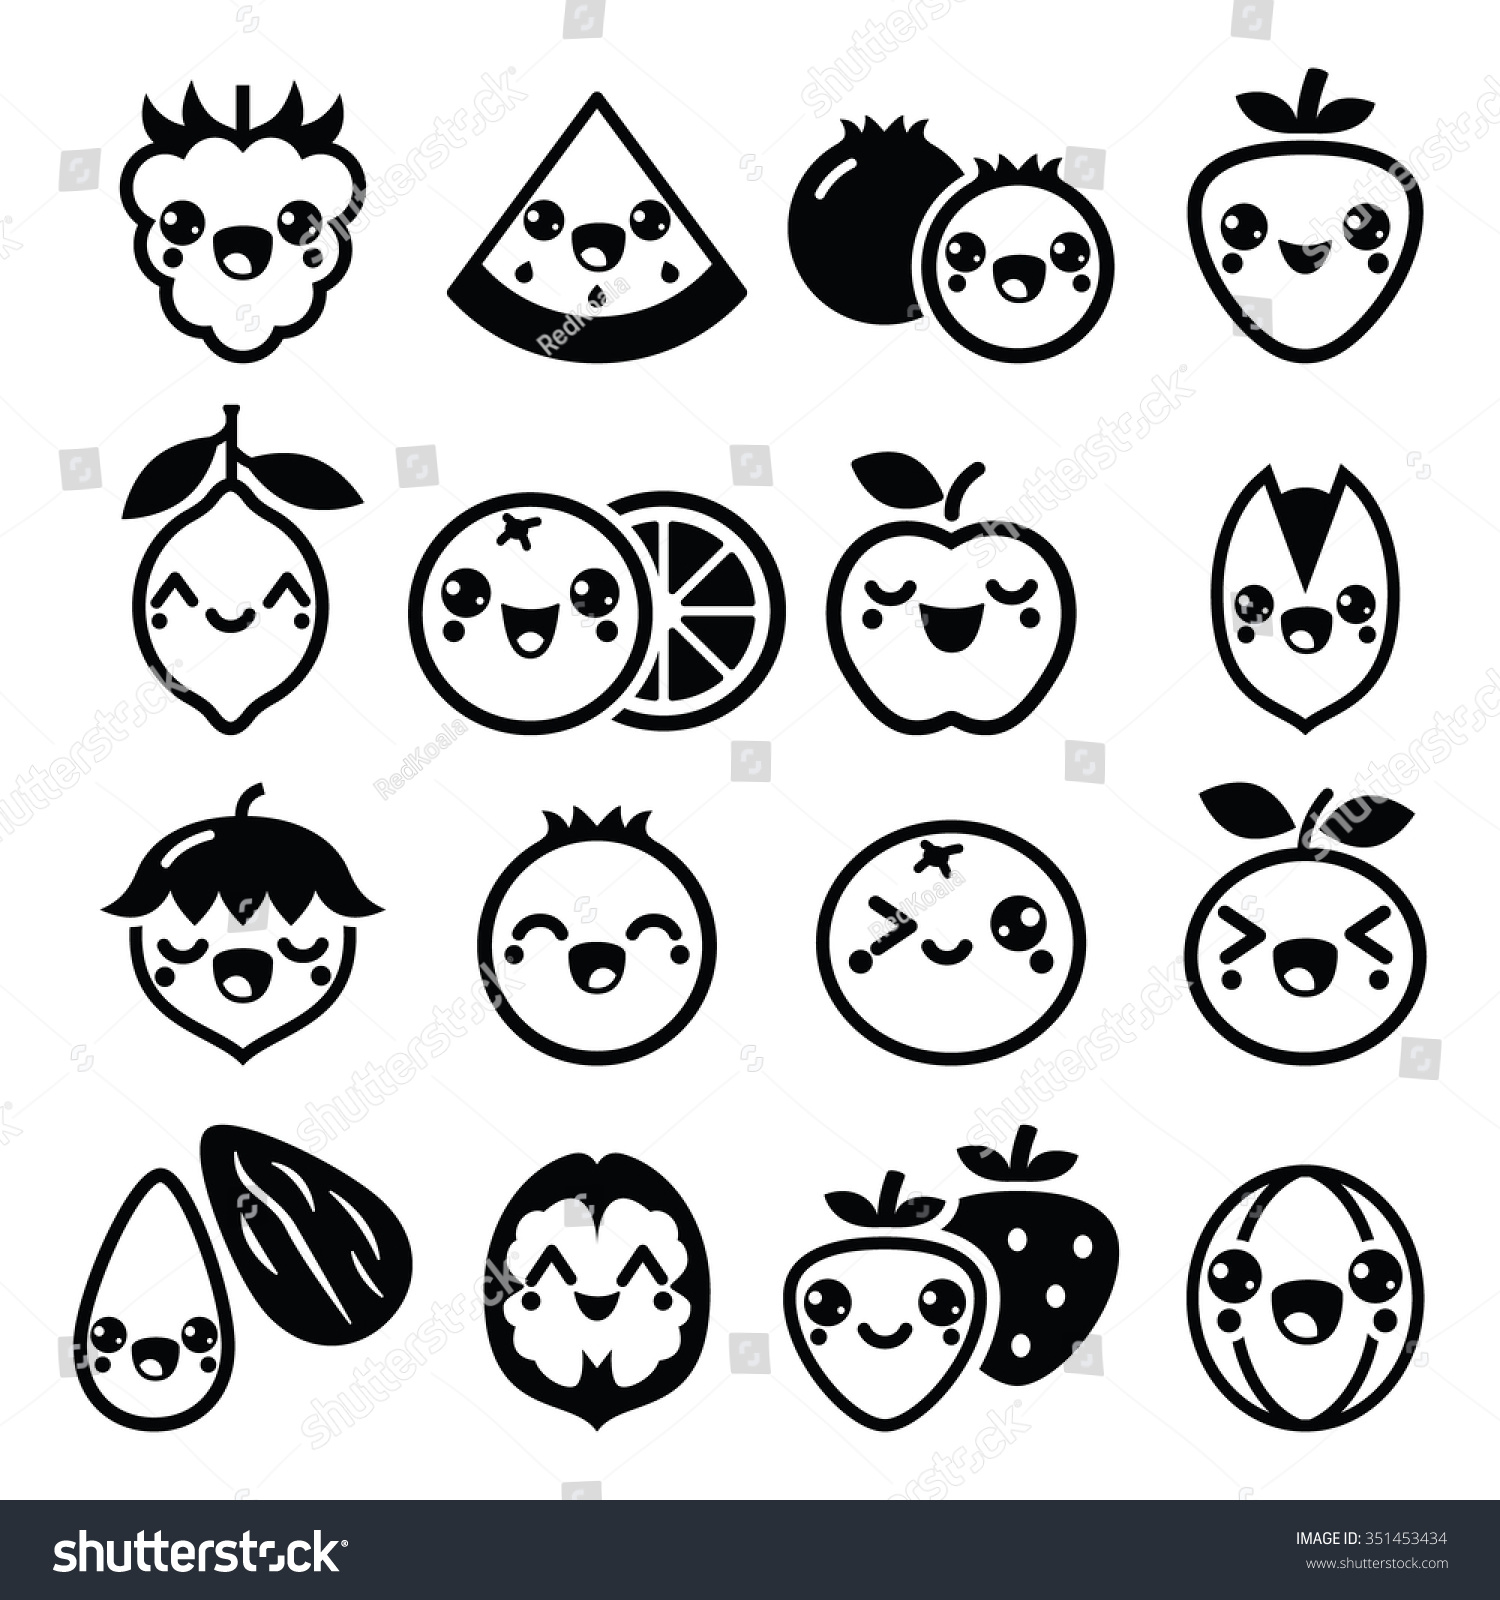 Kawaii Fruit And Nuts Cute Characters Design Stock Vector